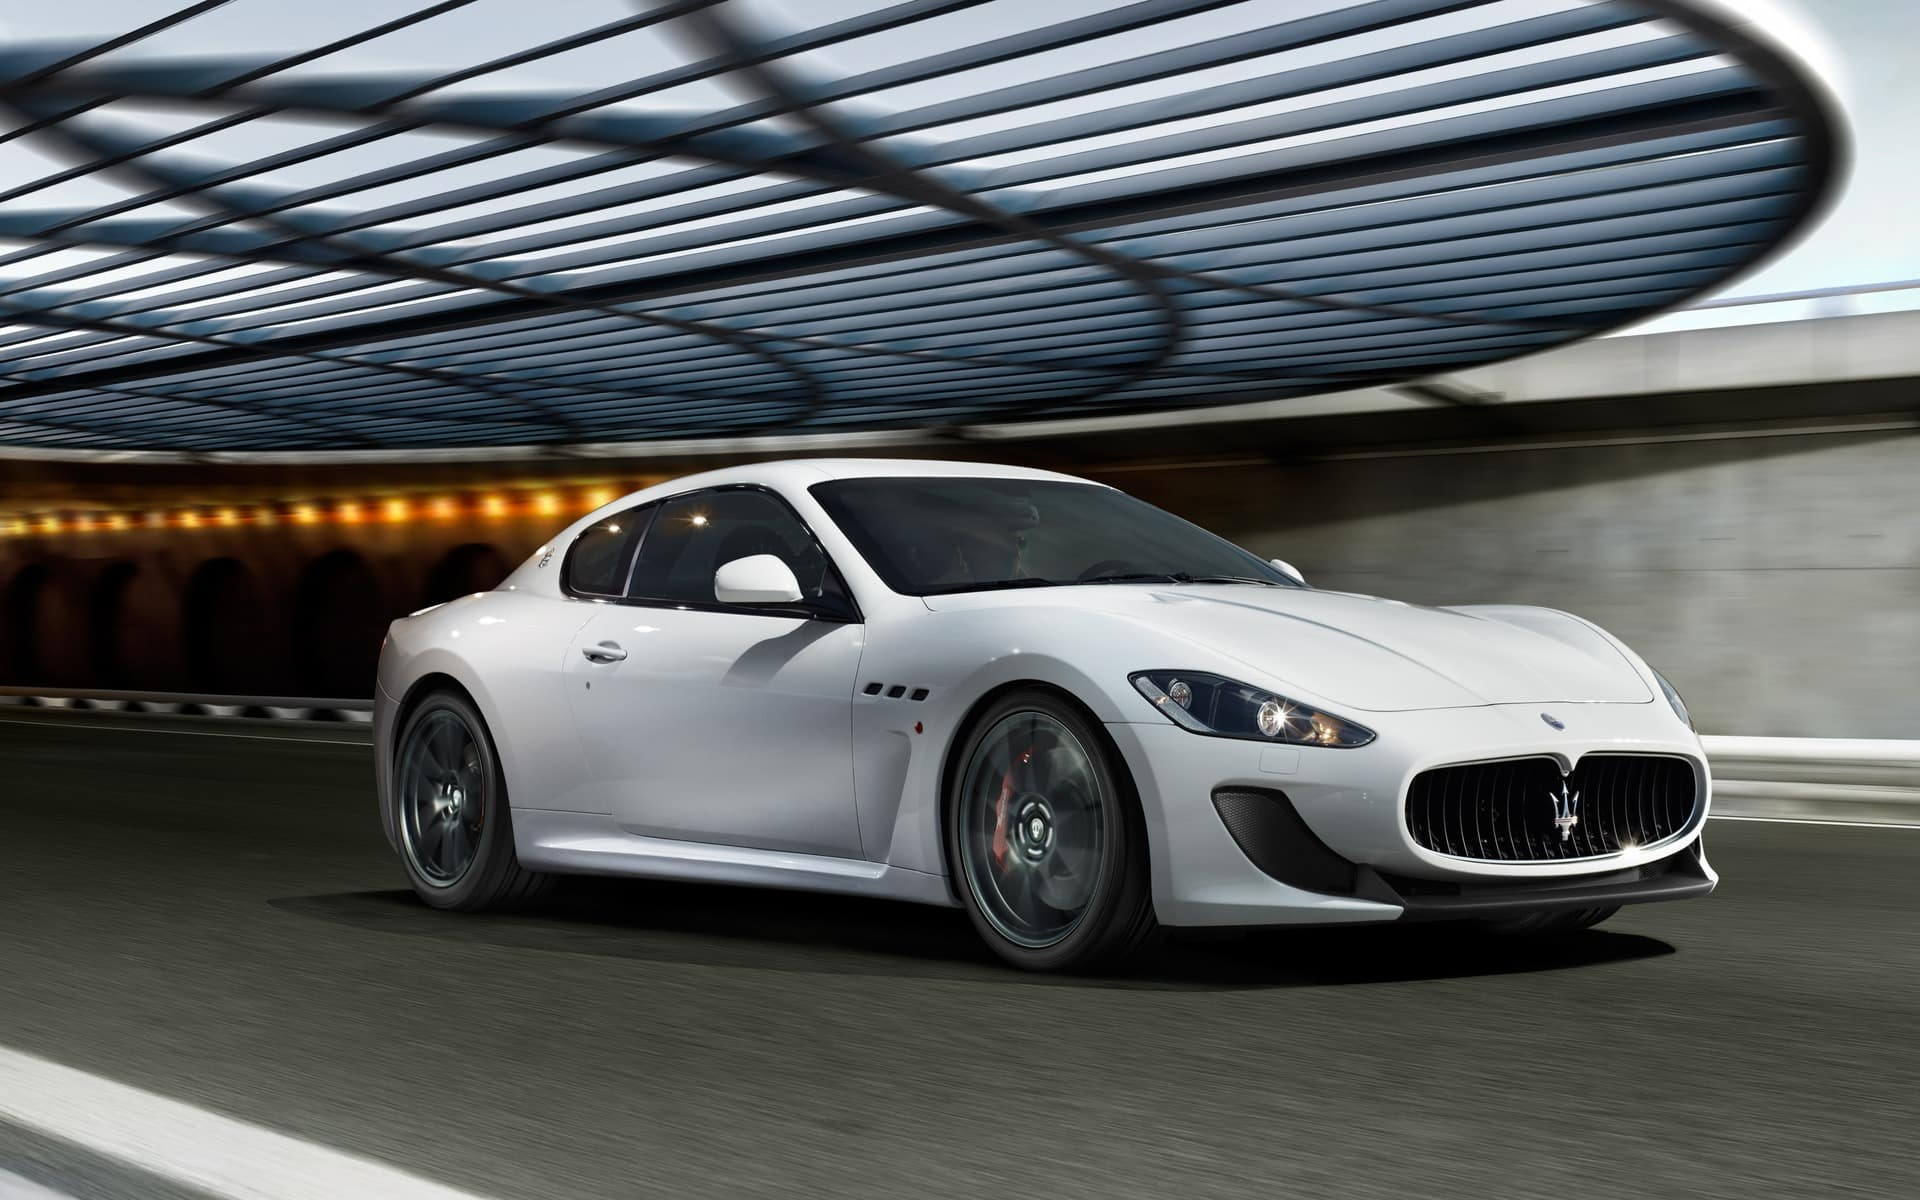 Exclusive Lease and Service Specials | Now at Maserati of Tampa